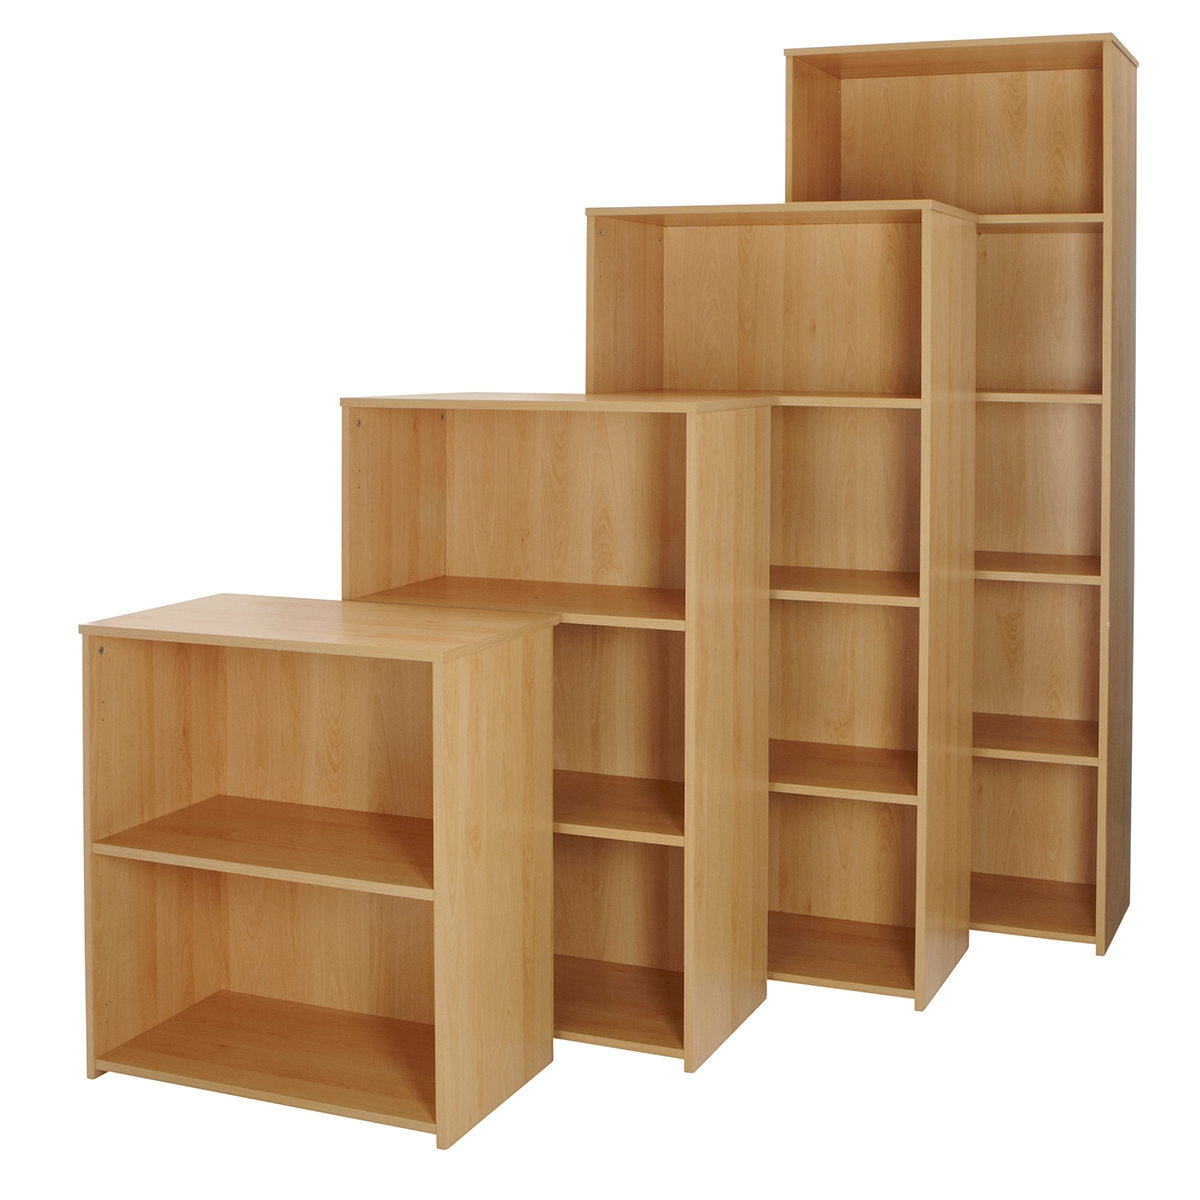 Wooden Bookcases Uk Kashiori Wooden Sofa Chair Bookshelves Throughout Beech Bookcases (View 15 of 15)